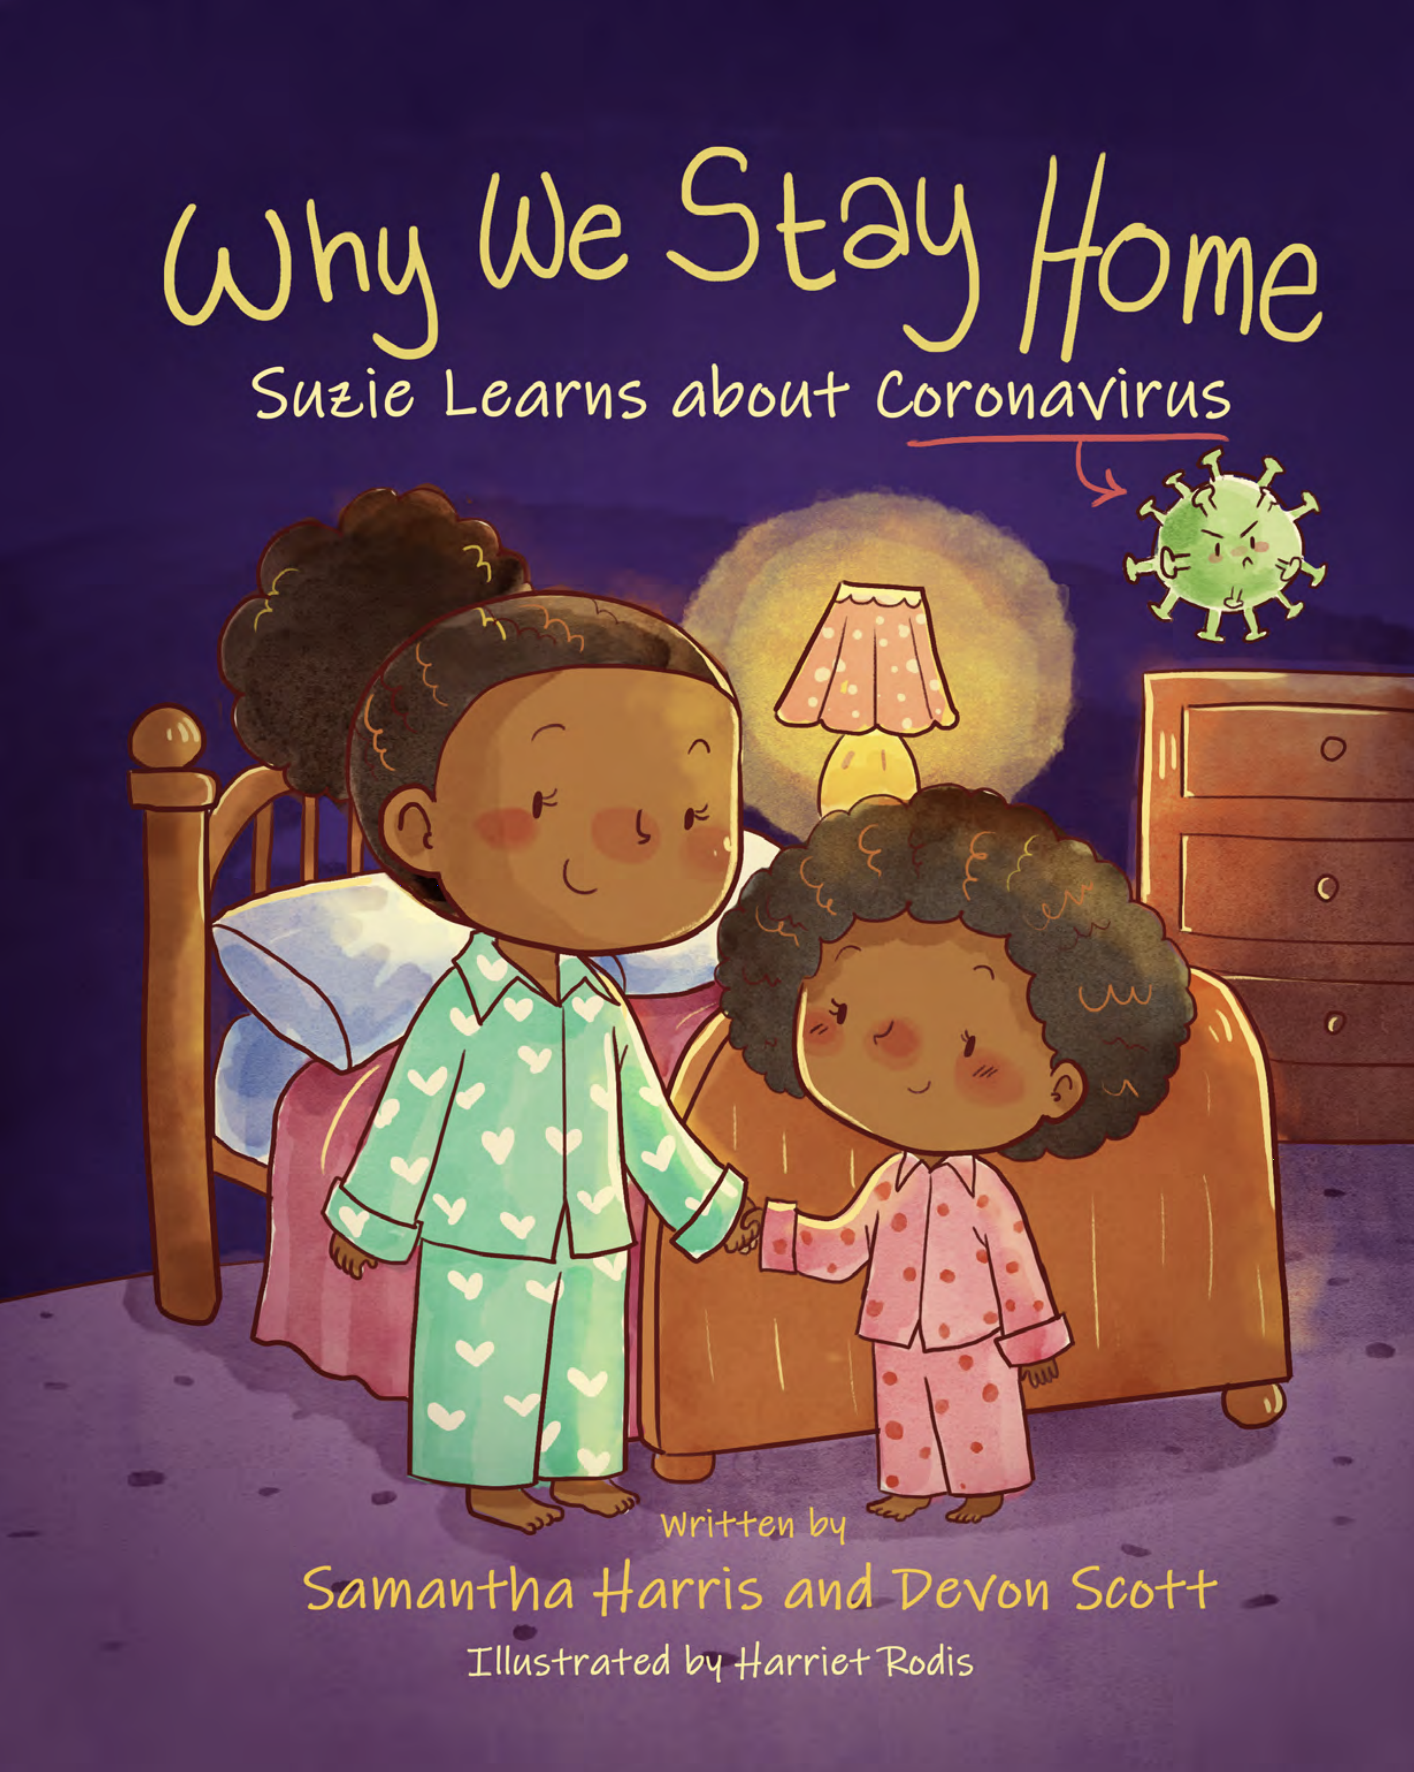 Why We Stay Home: Suzie Learns about Coronavirus